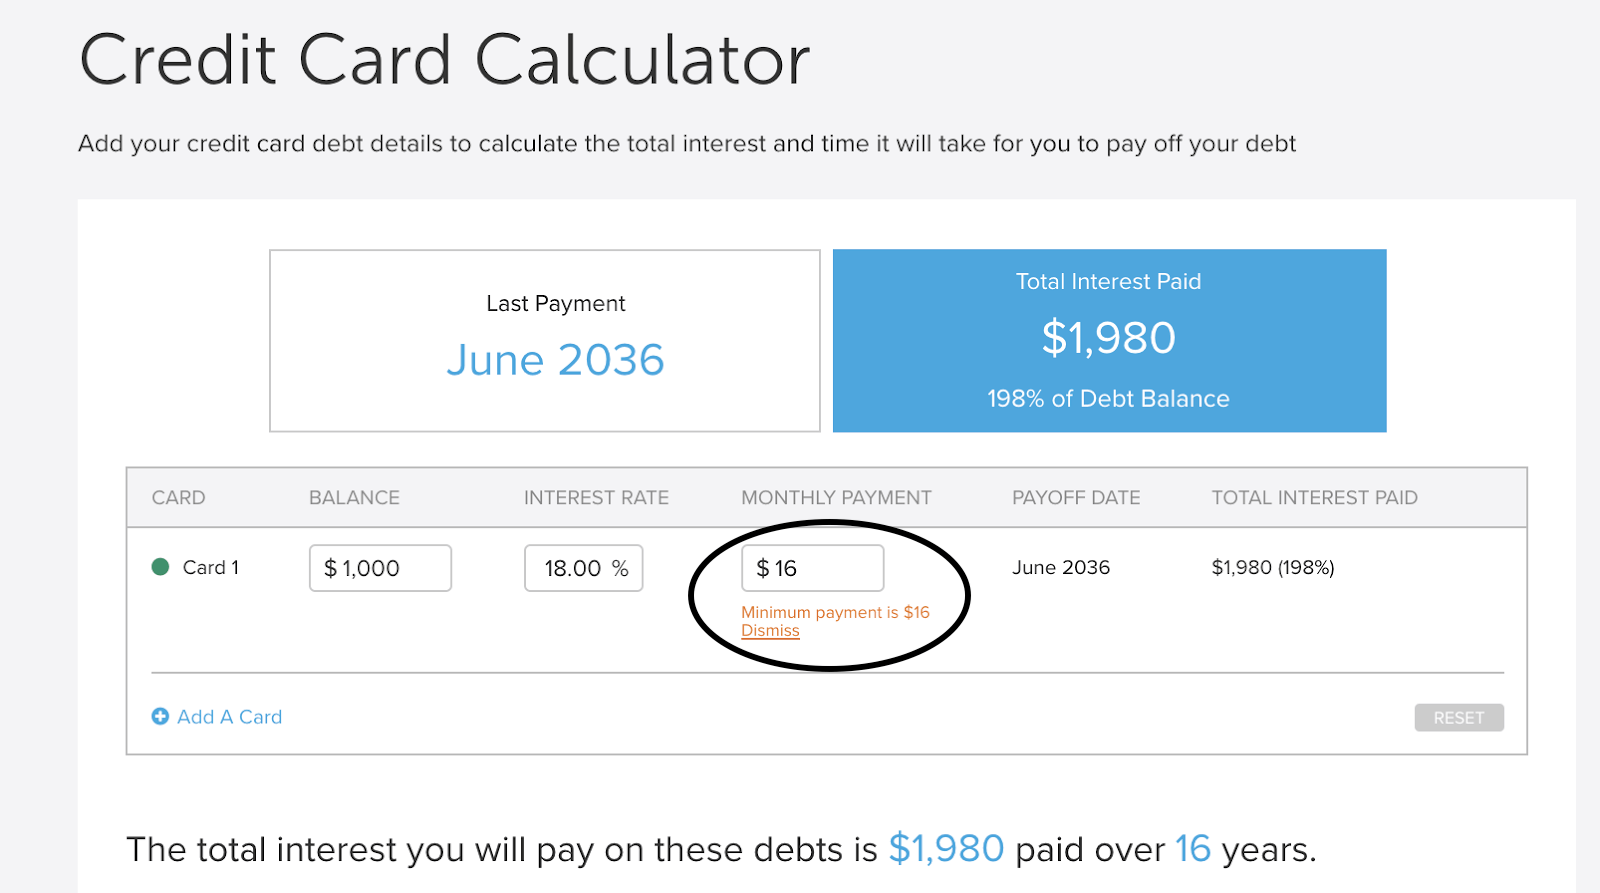 A credit card calculator showing a minimum payment of $16, which means it will take 16 years to pay off the balance.